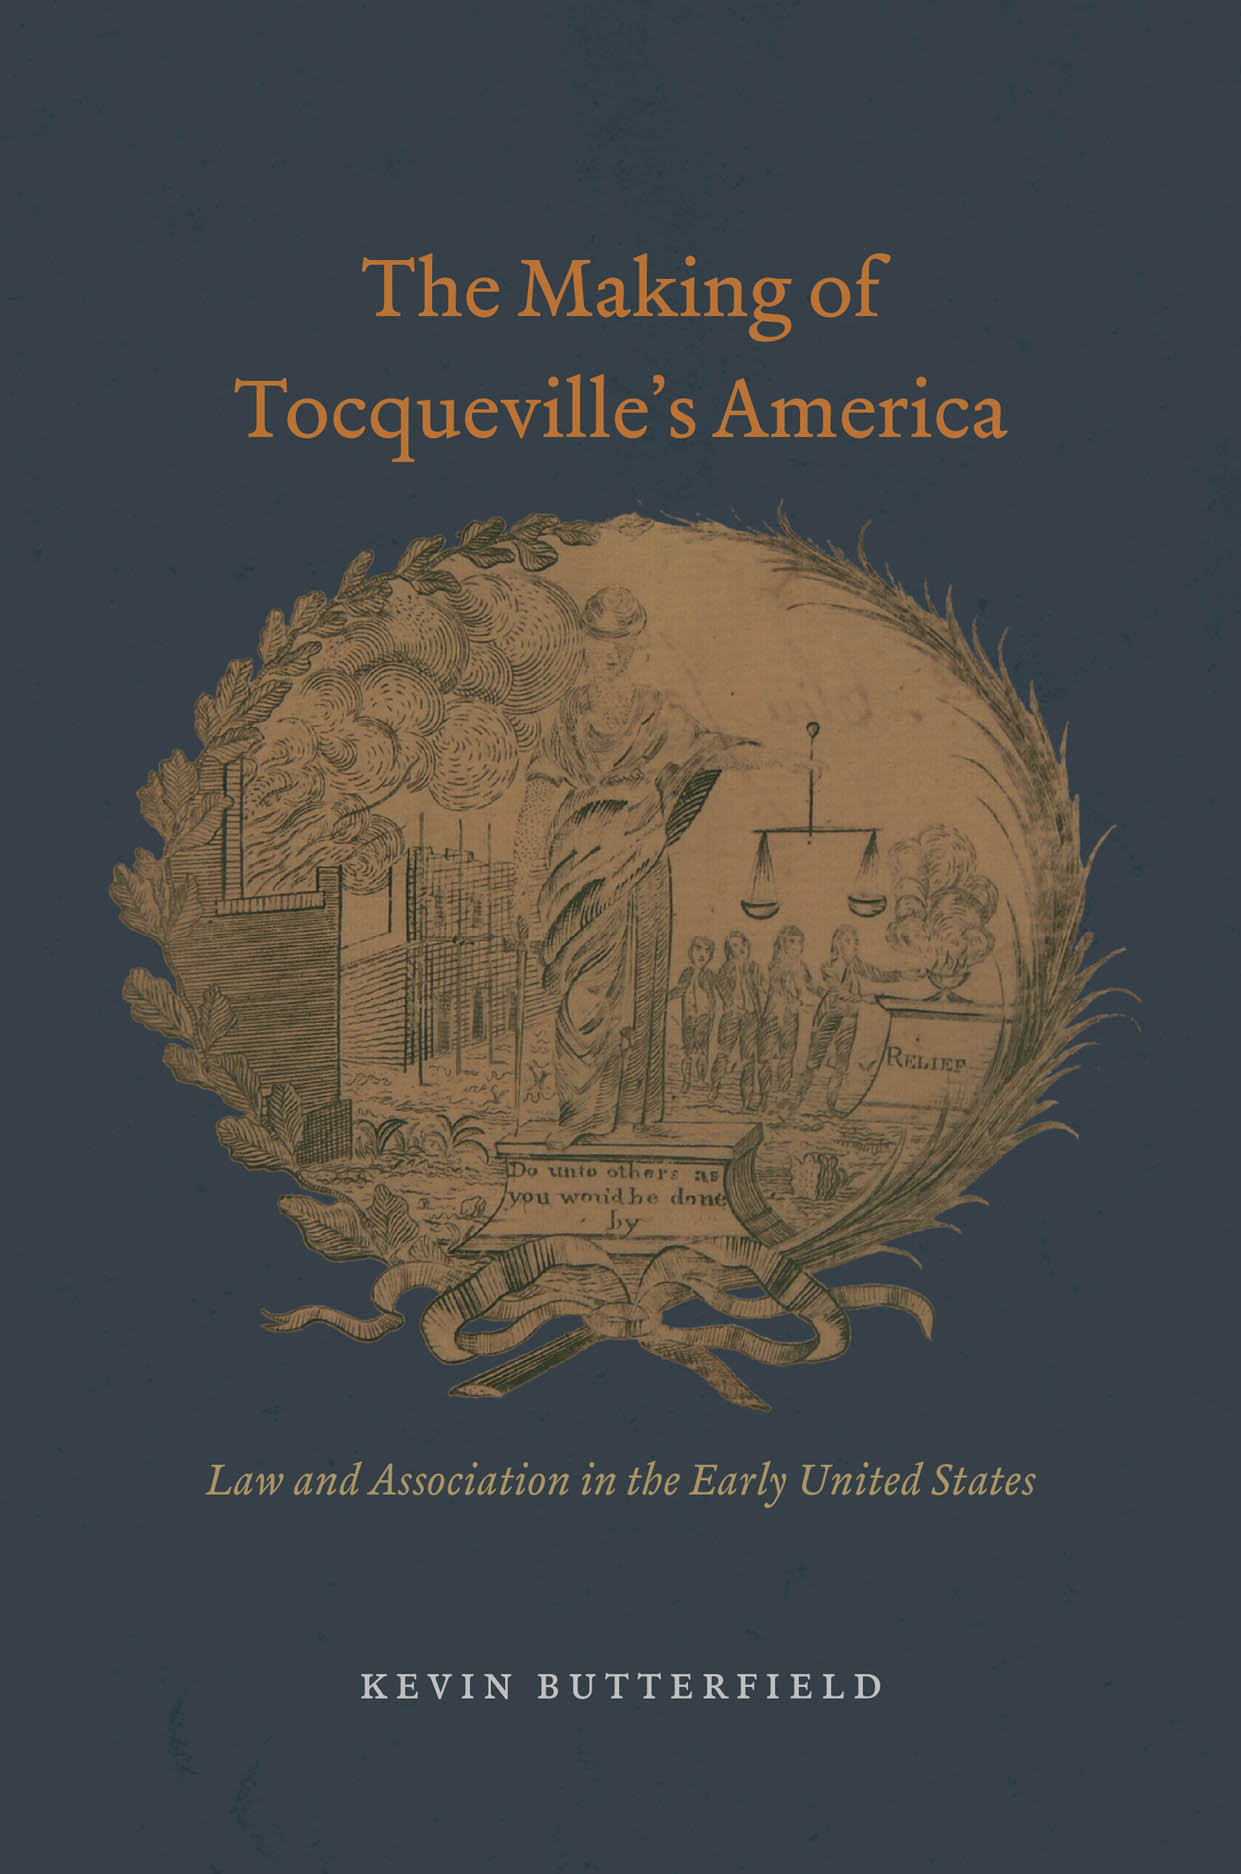 The Making of Tocqueville's America